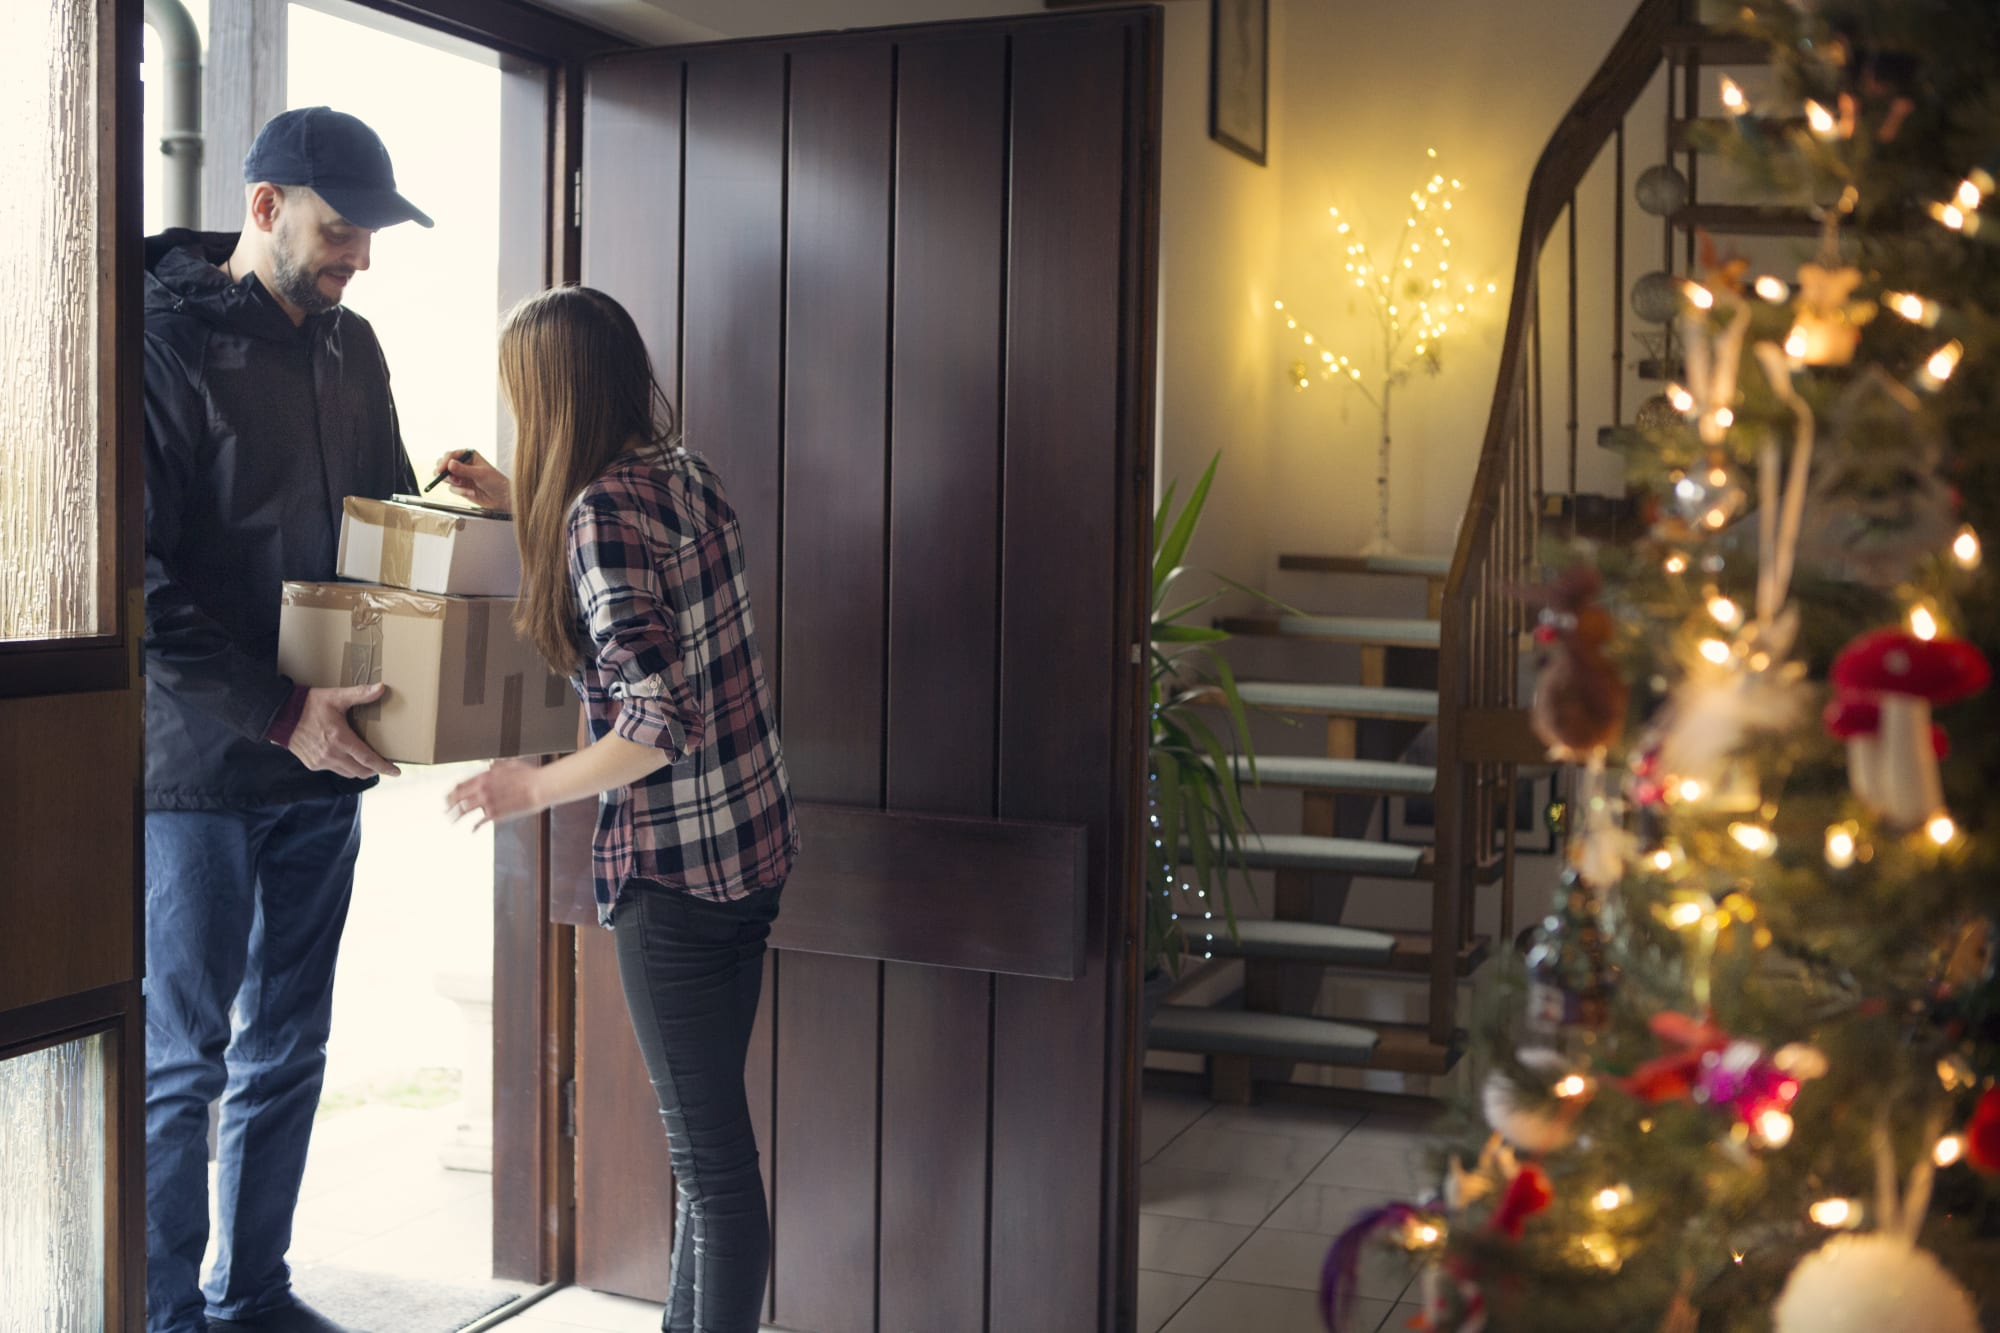 Teenager receiving Christmas packages delivered by postman